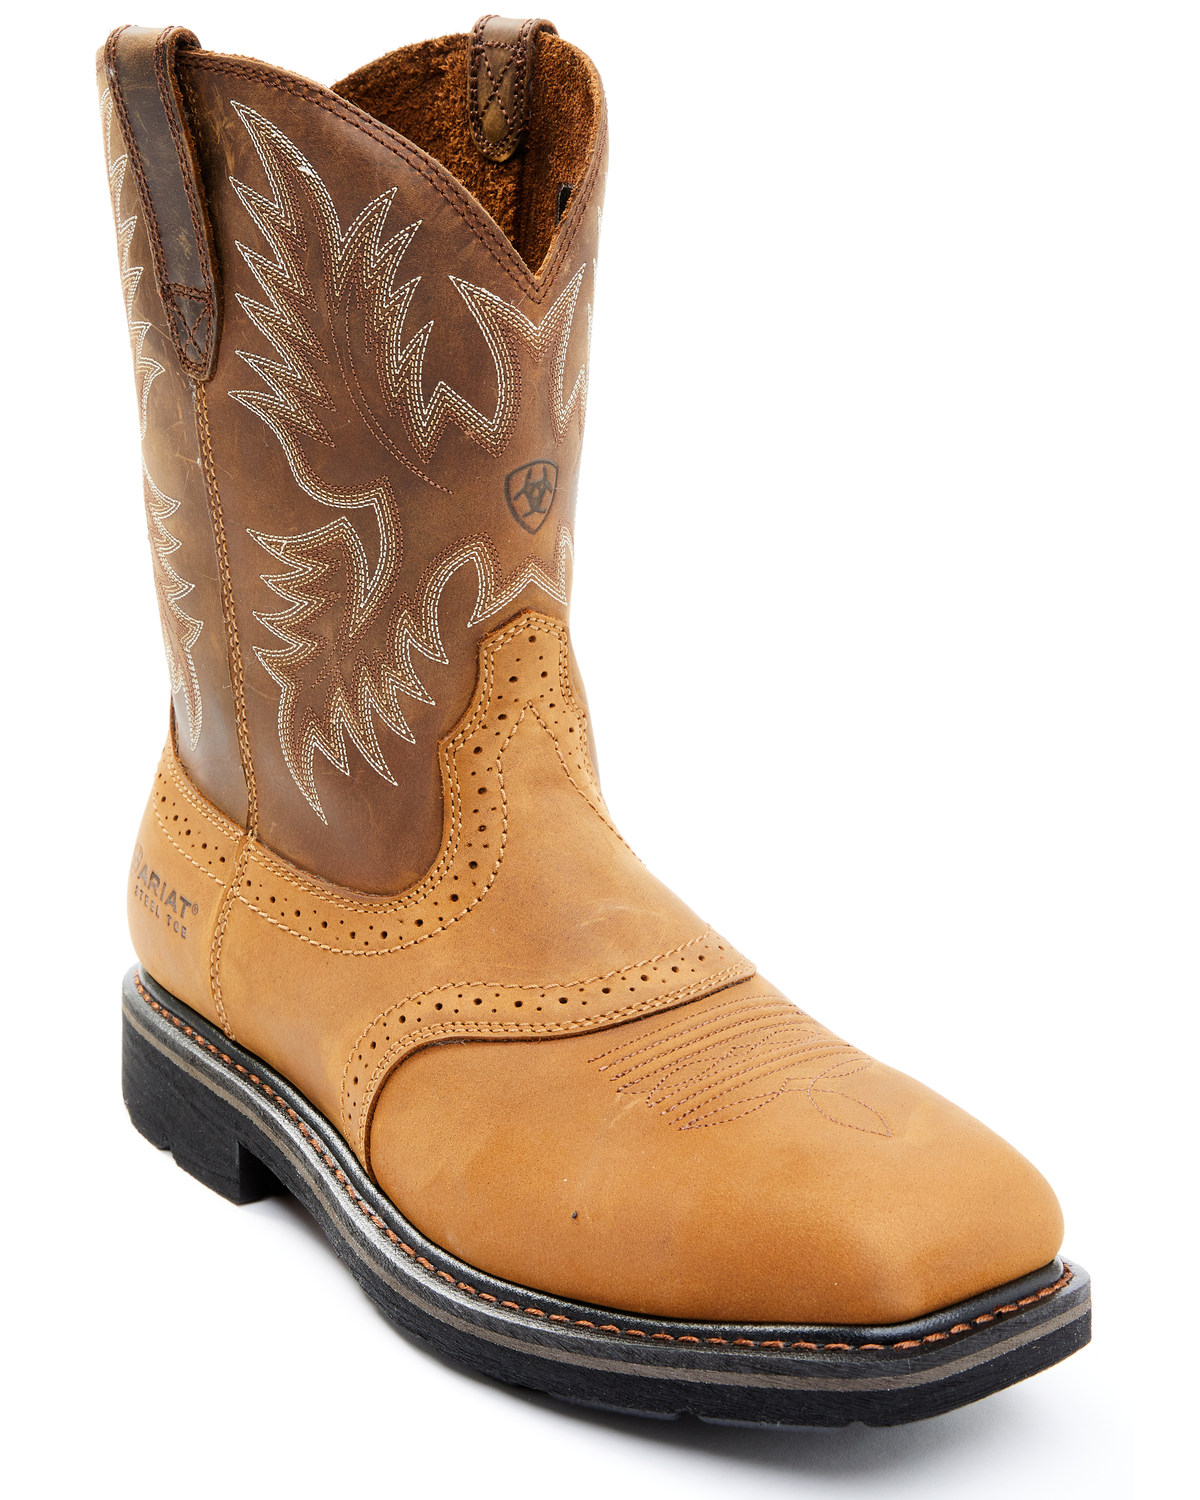 db4f64a4c61 Ariat Men's Sierra Steel Square Toe Western Work Boots